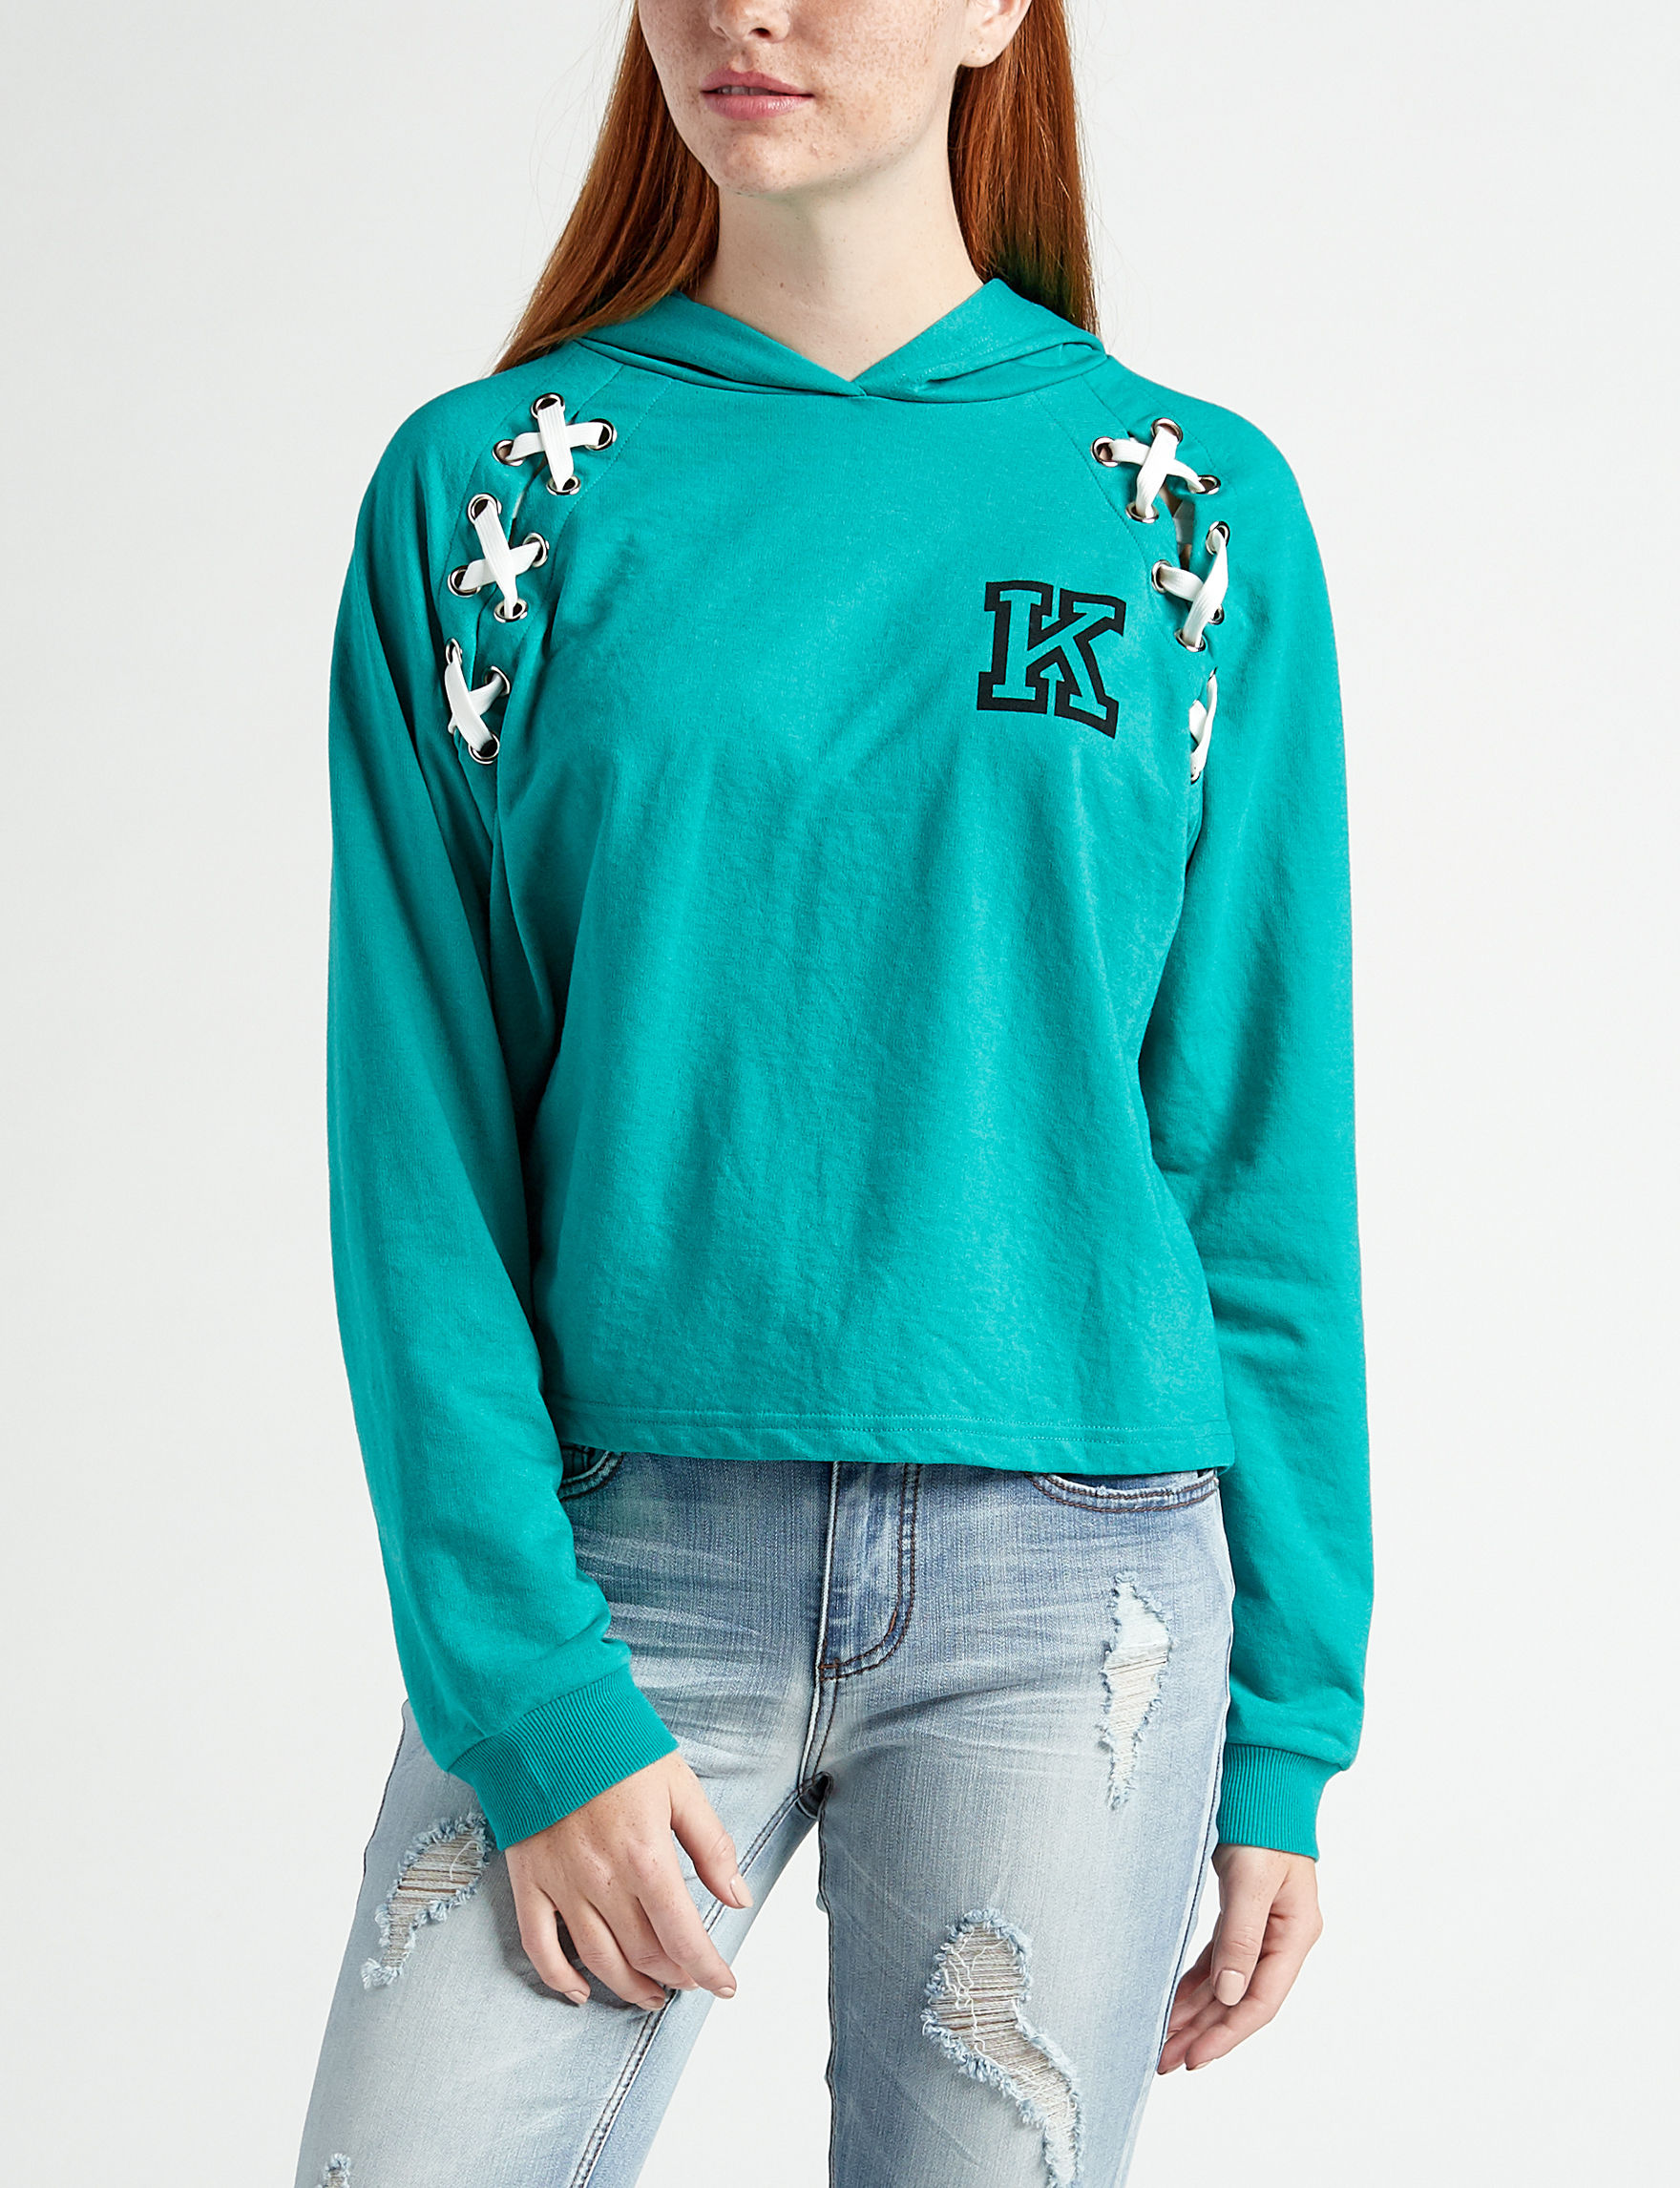 Justify Teal Pull-overs